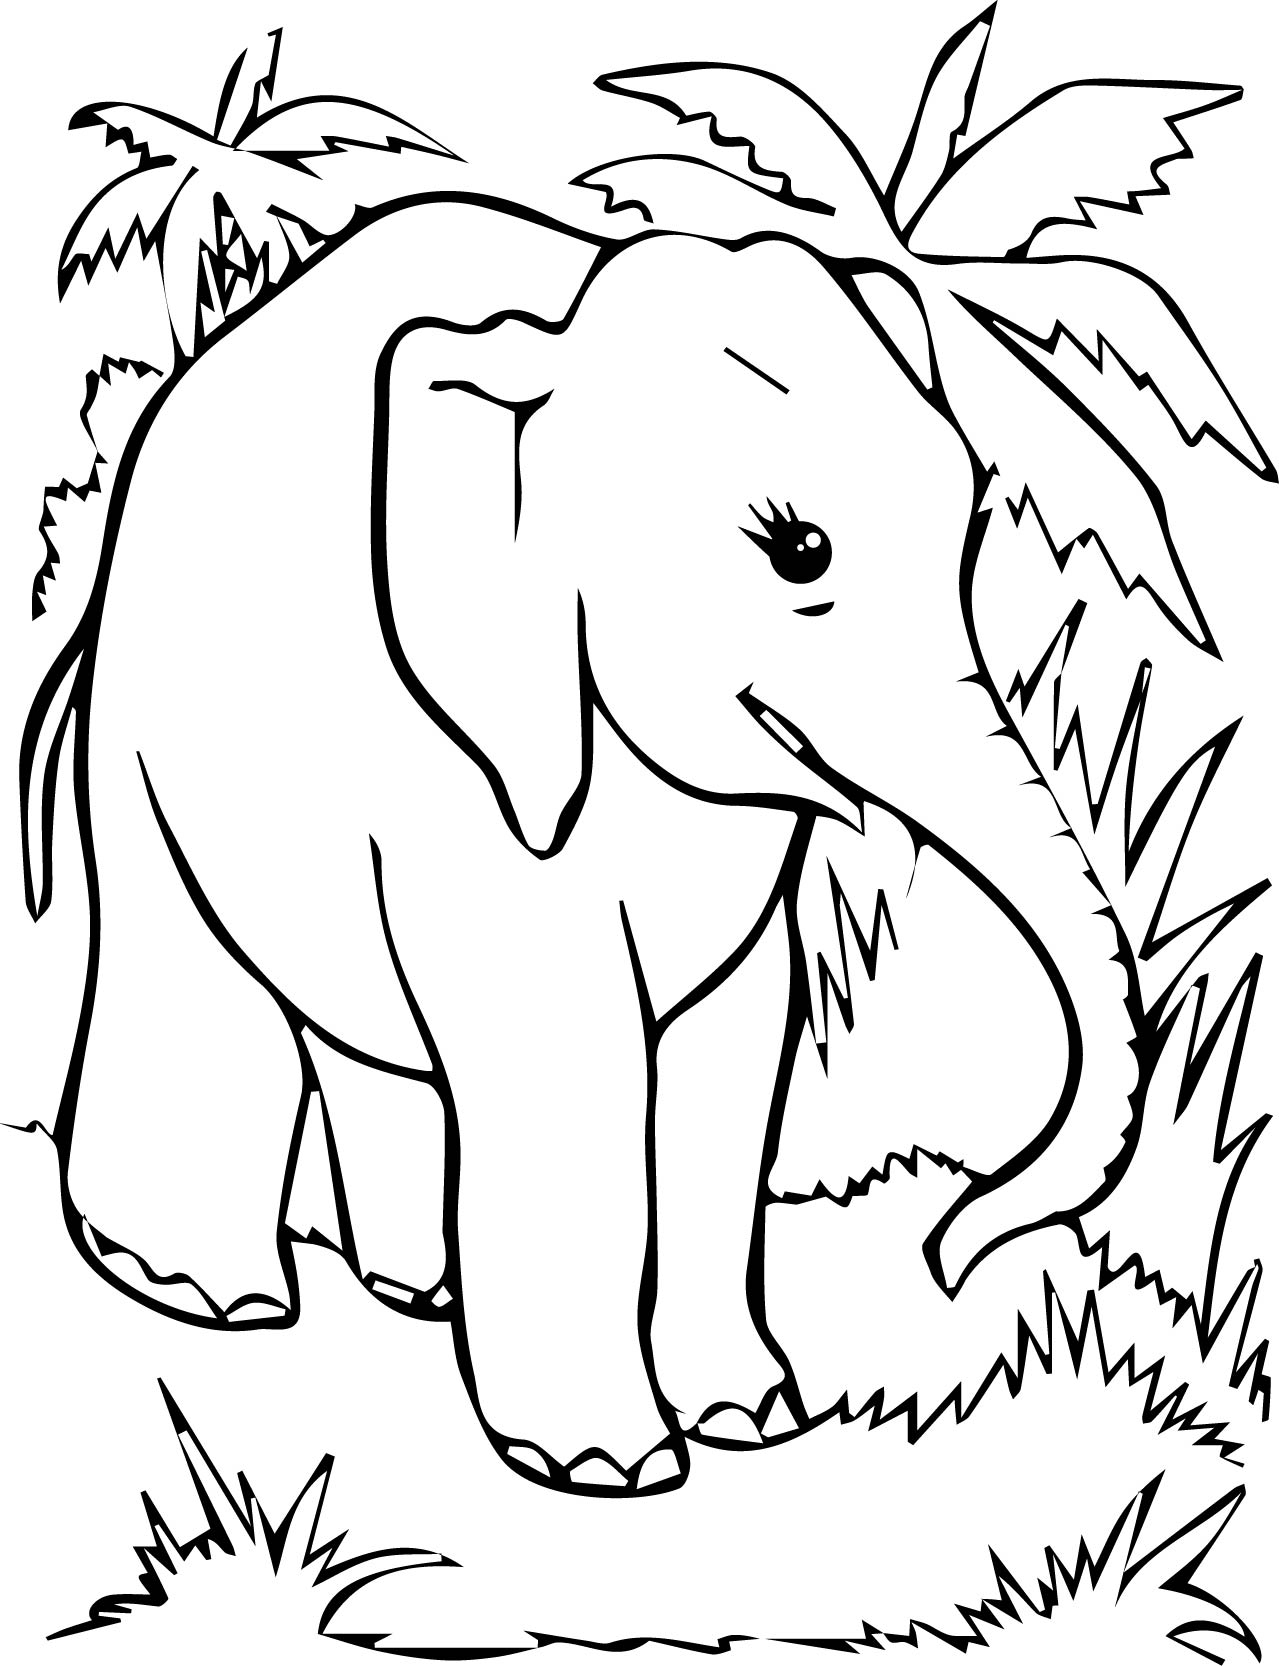 free elephant coloring pages - free coloring page elephant